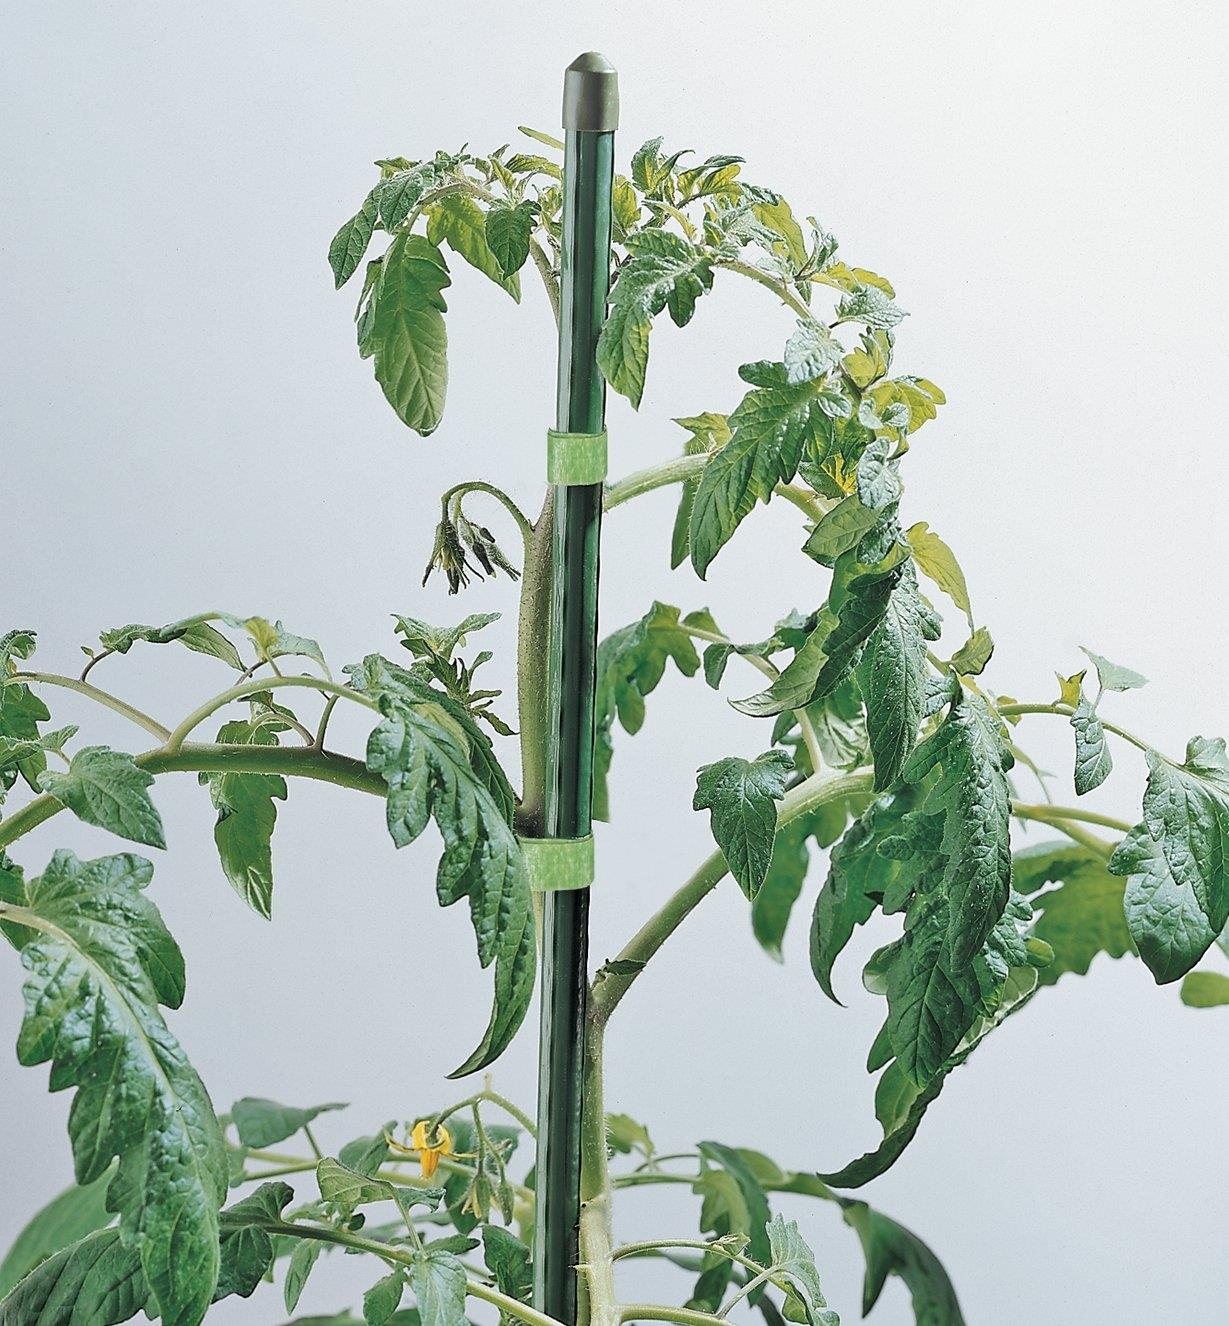 Permanent Stake tied to a tomato plant